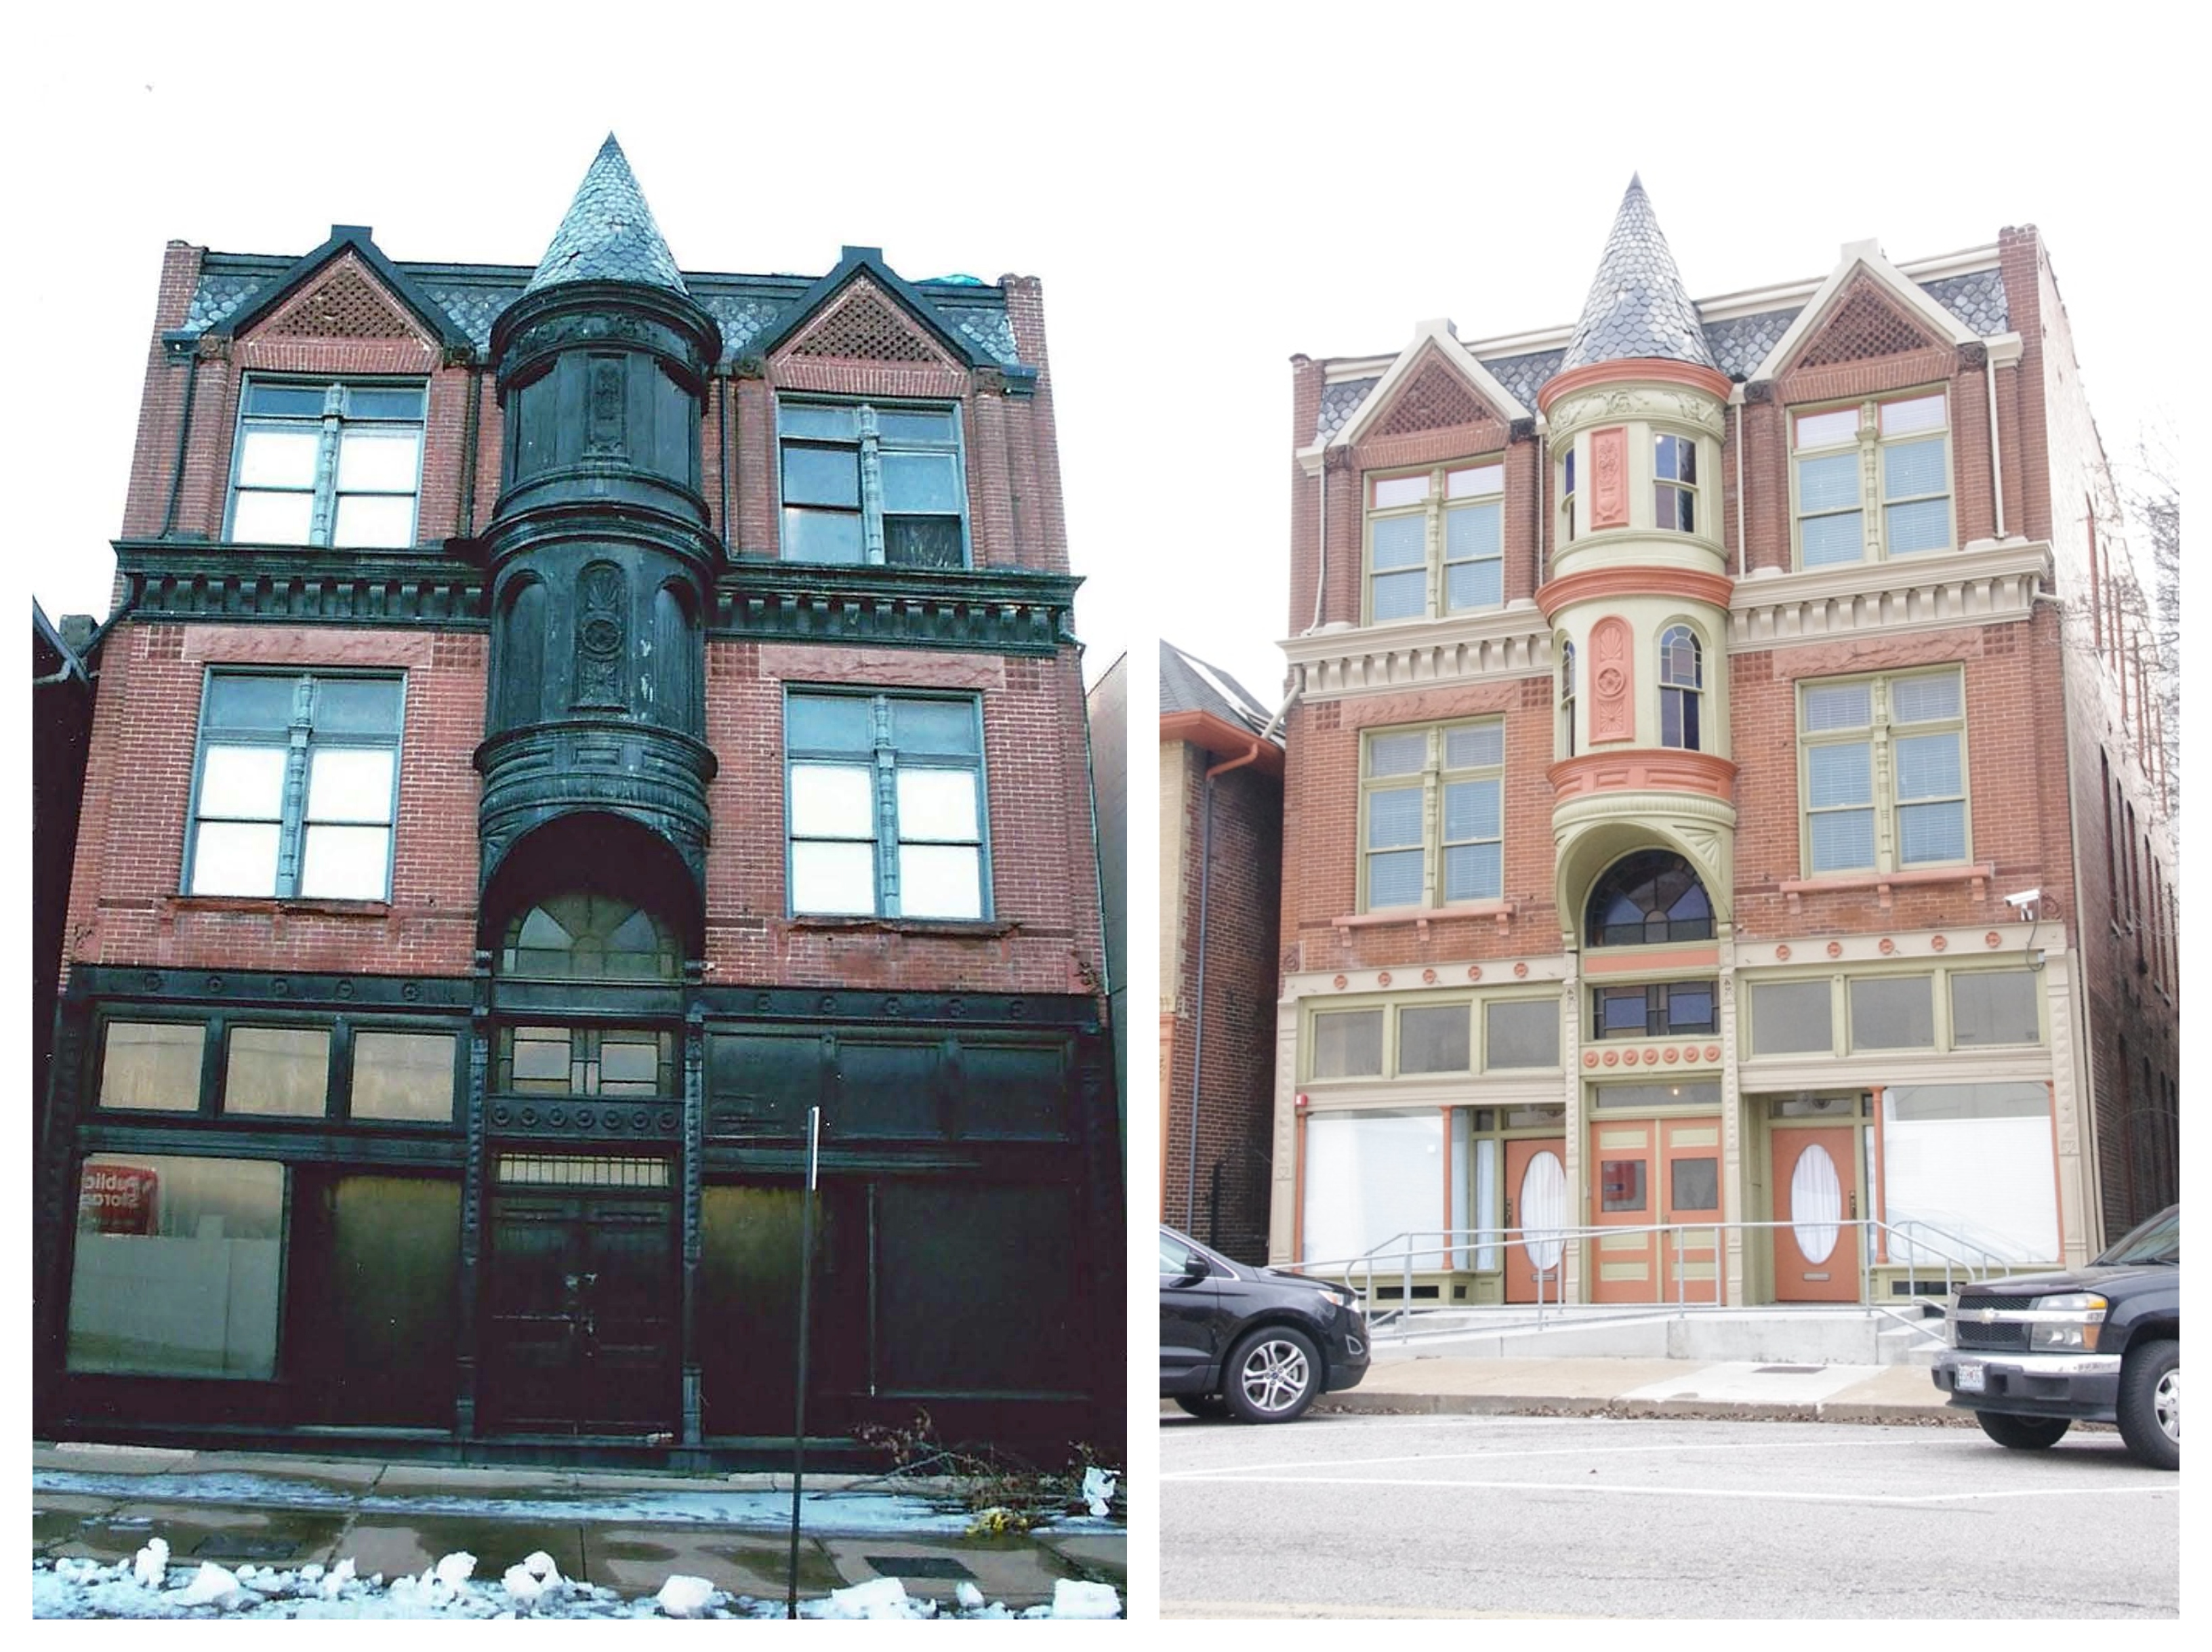 3900-3912 Laclede Avenue, the Gerhart Block/ Gerhart Lofts